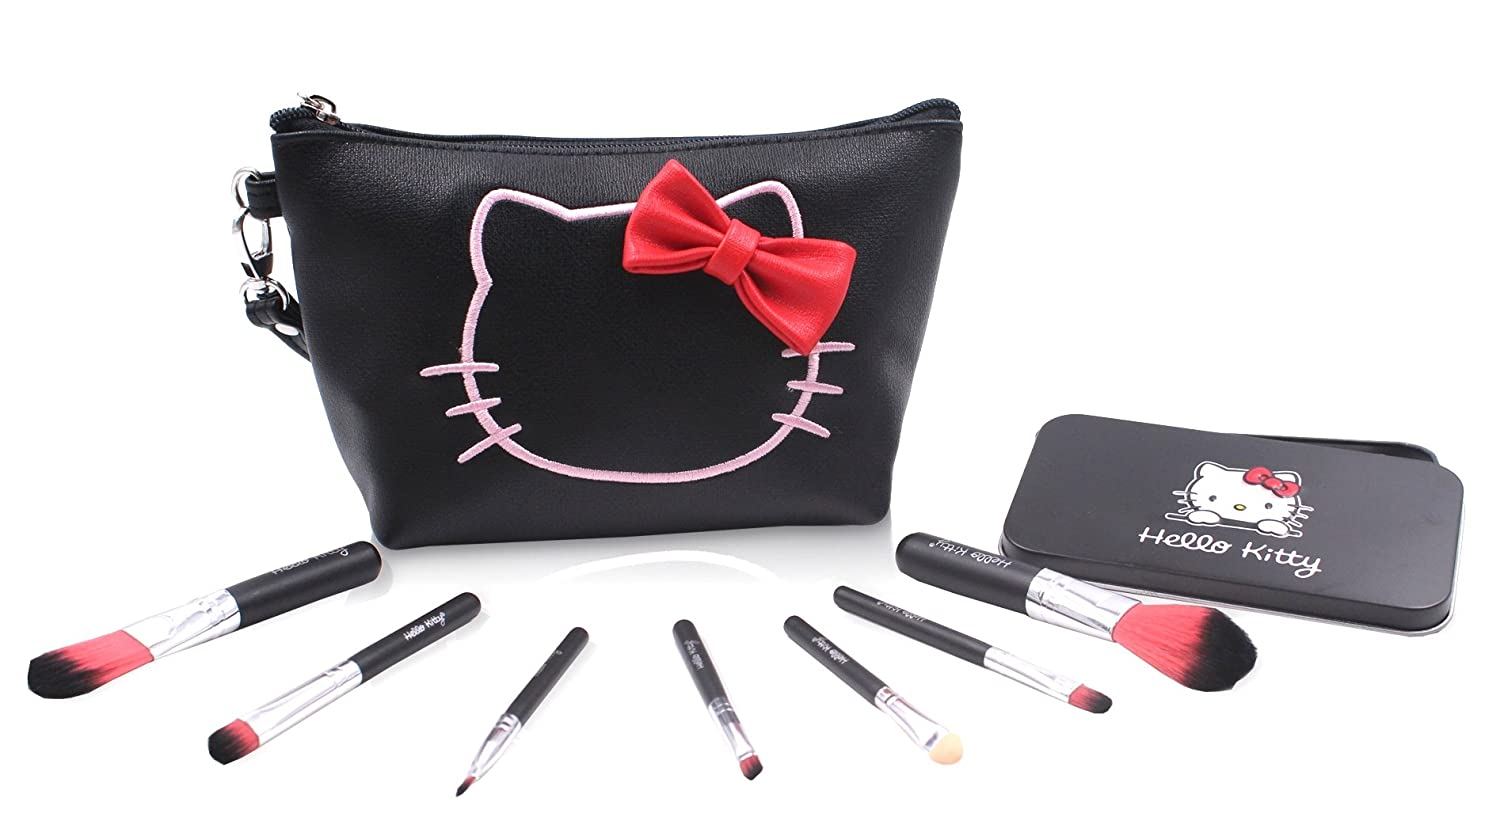 Finex Hello Kitty Black PU Leather Cosmetic Bag + Makeup Brushes SET - Multifuction Travel Make up handbag with zipper and 7 Make-up Brushes in a Black Tin Box